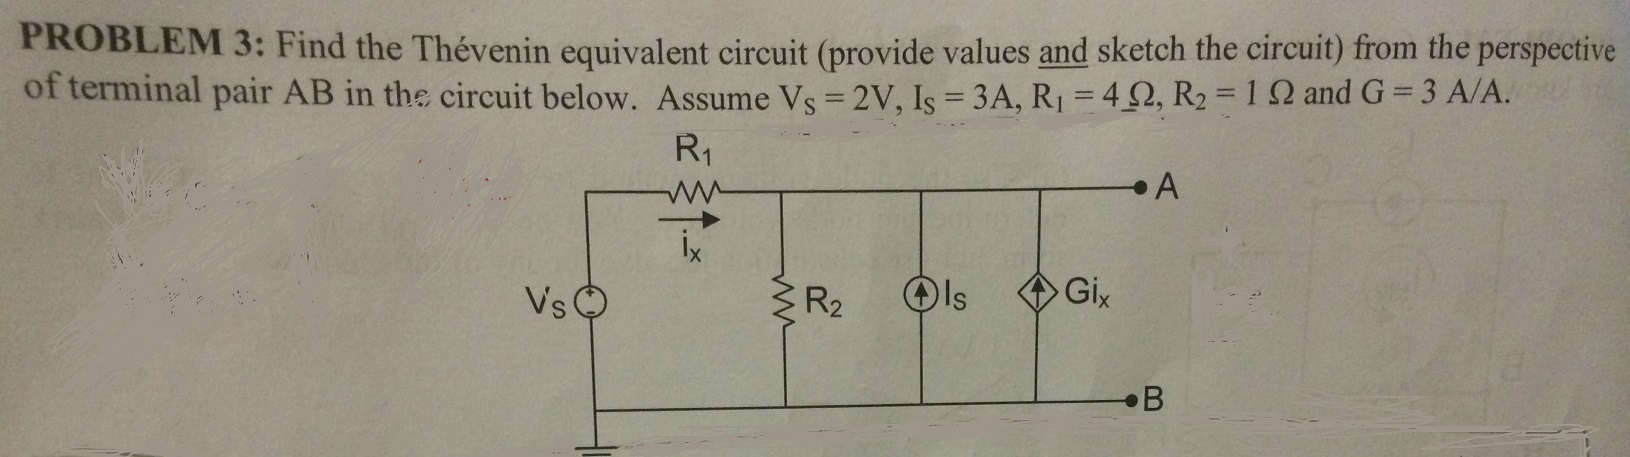 Find the Thevenin equivalent circuit (provide valu